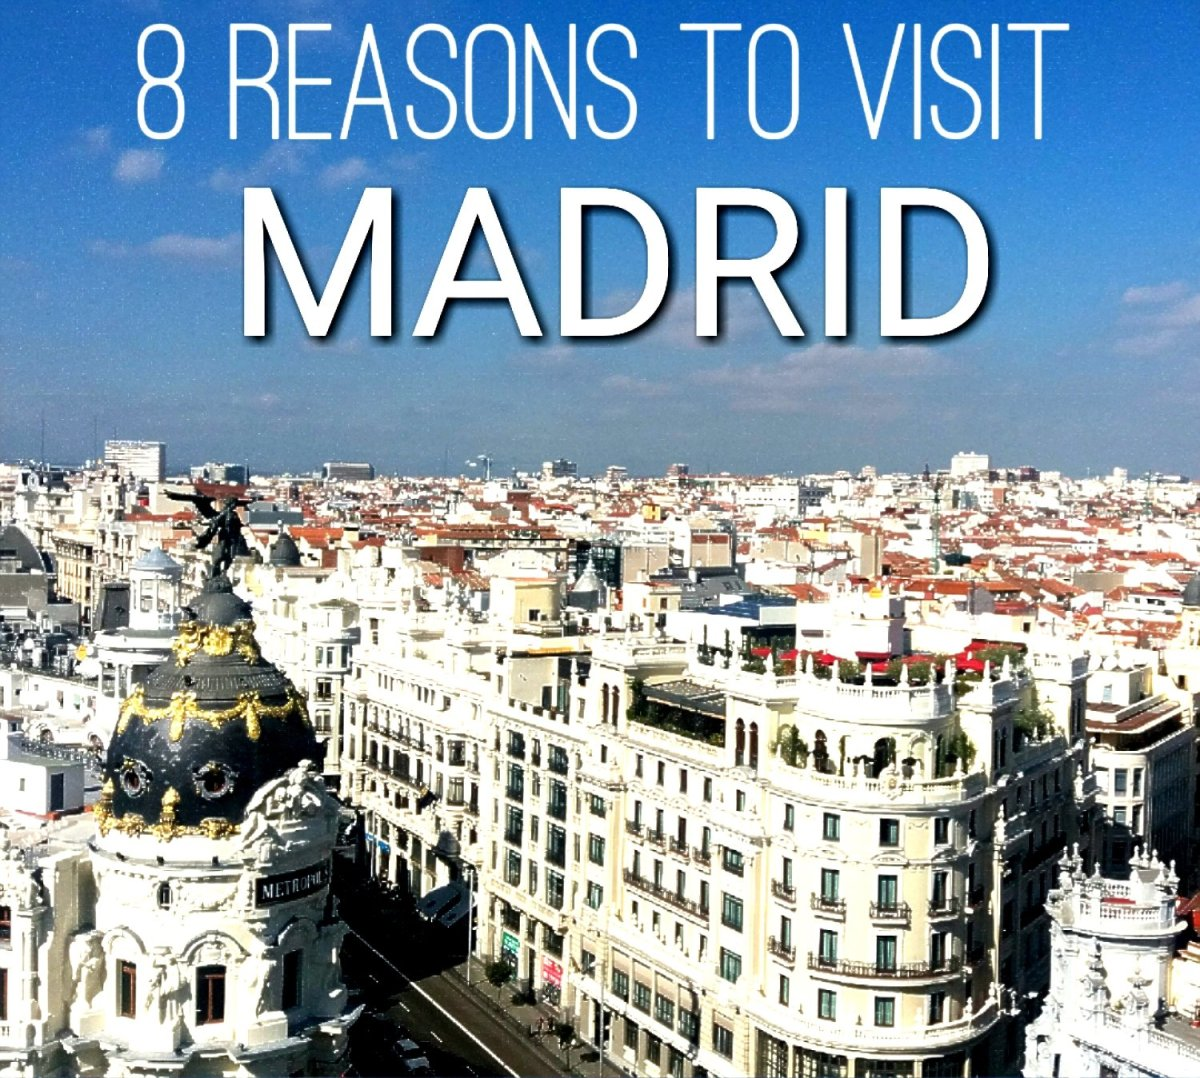 8 Reasons To Visit Madrid